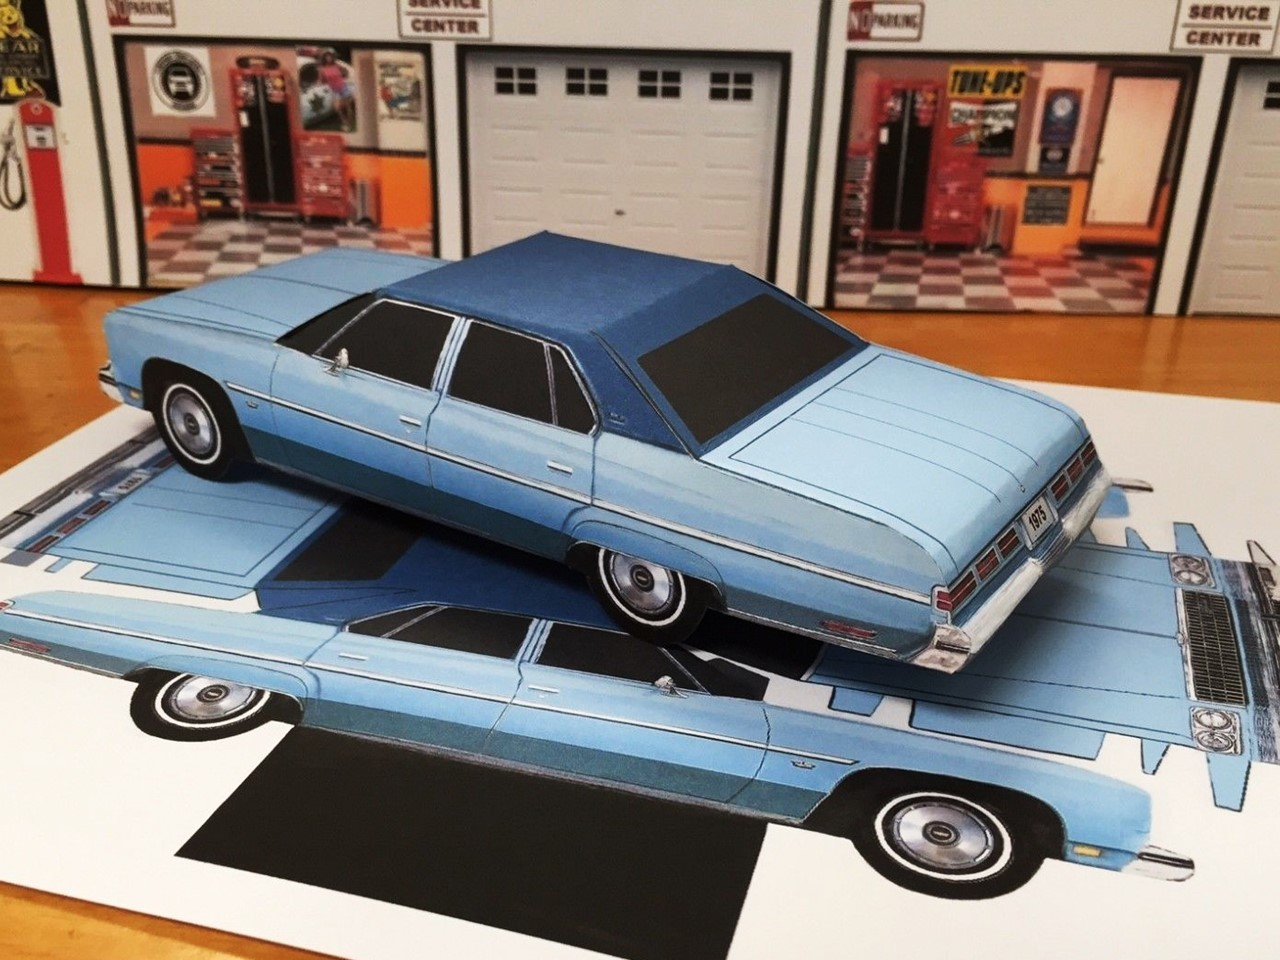 papercraft-1975-chevrolet-caprice-4-door-sedan